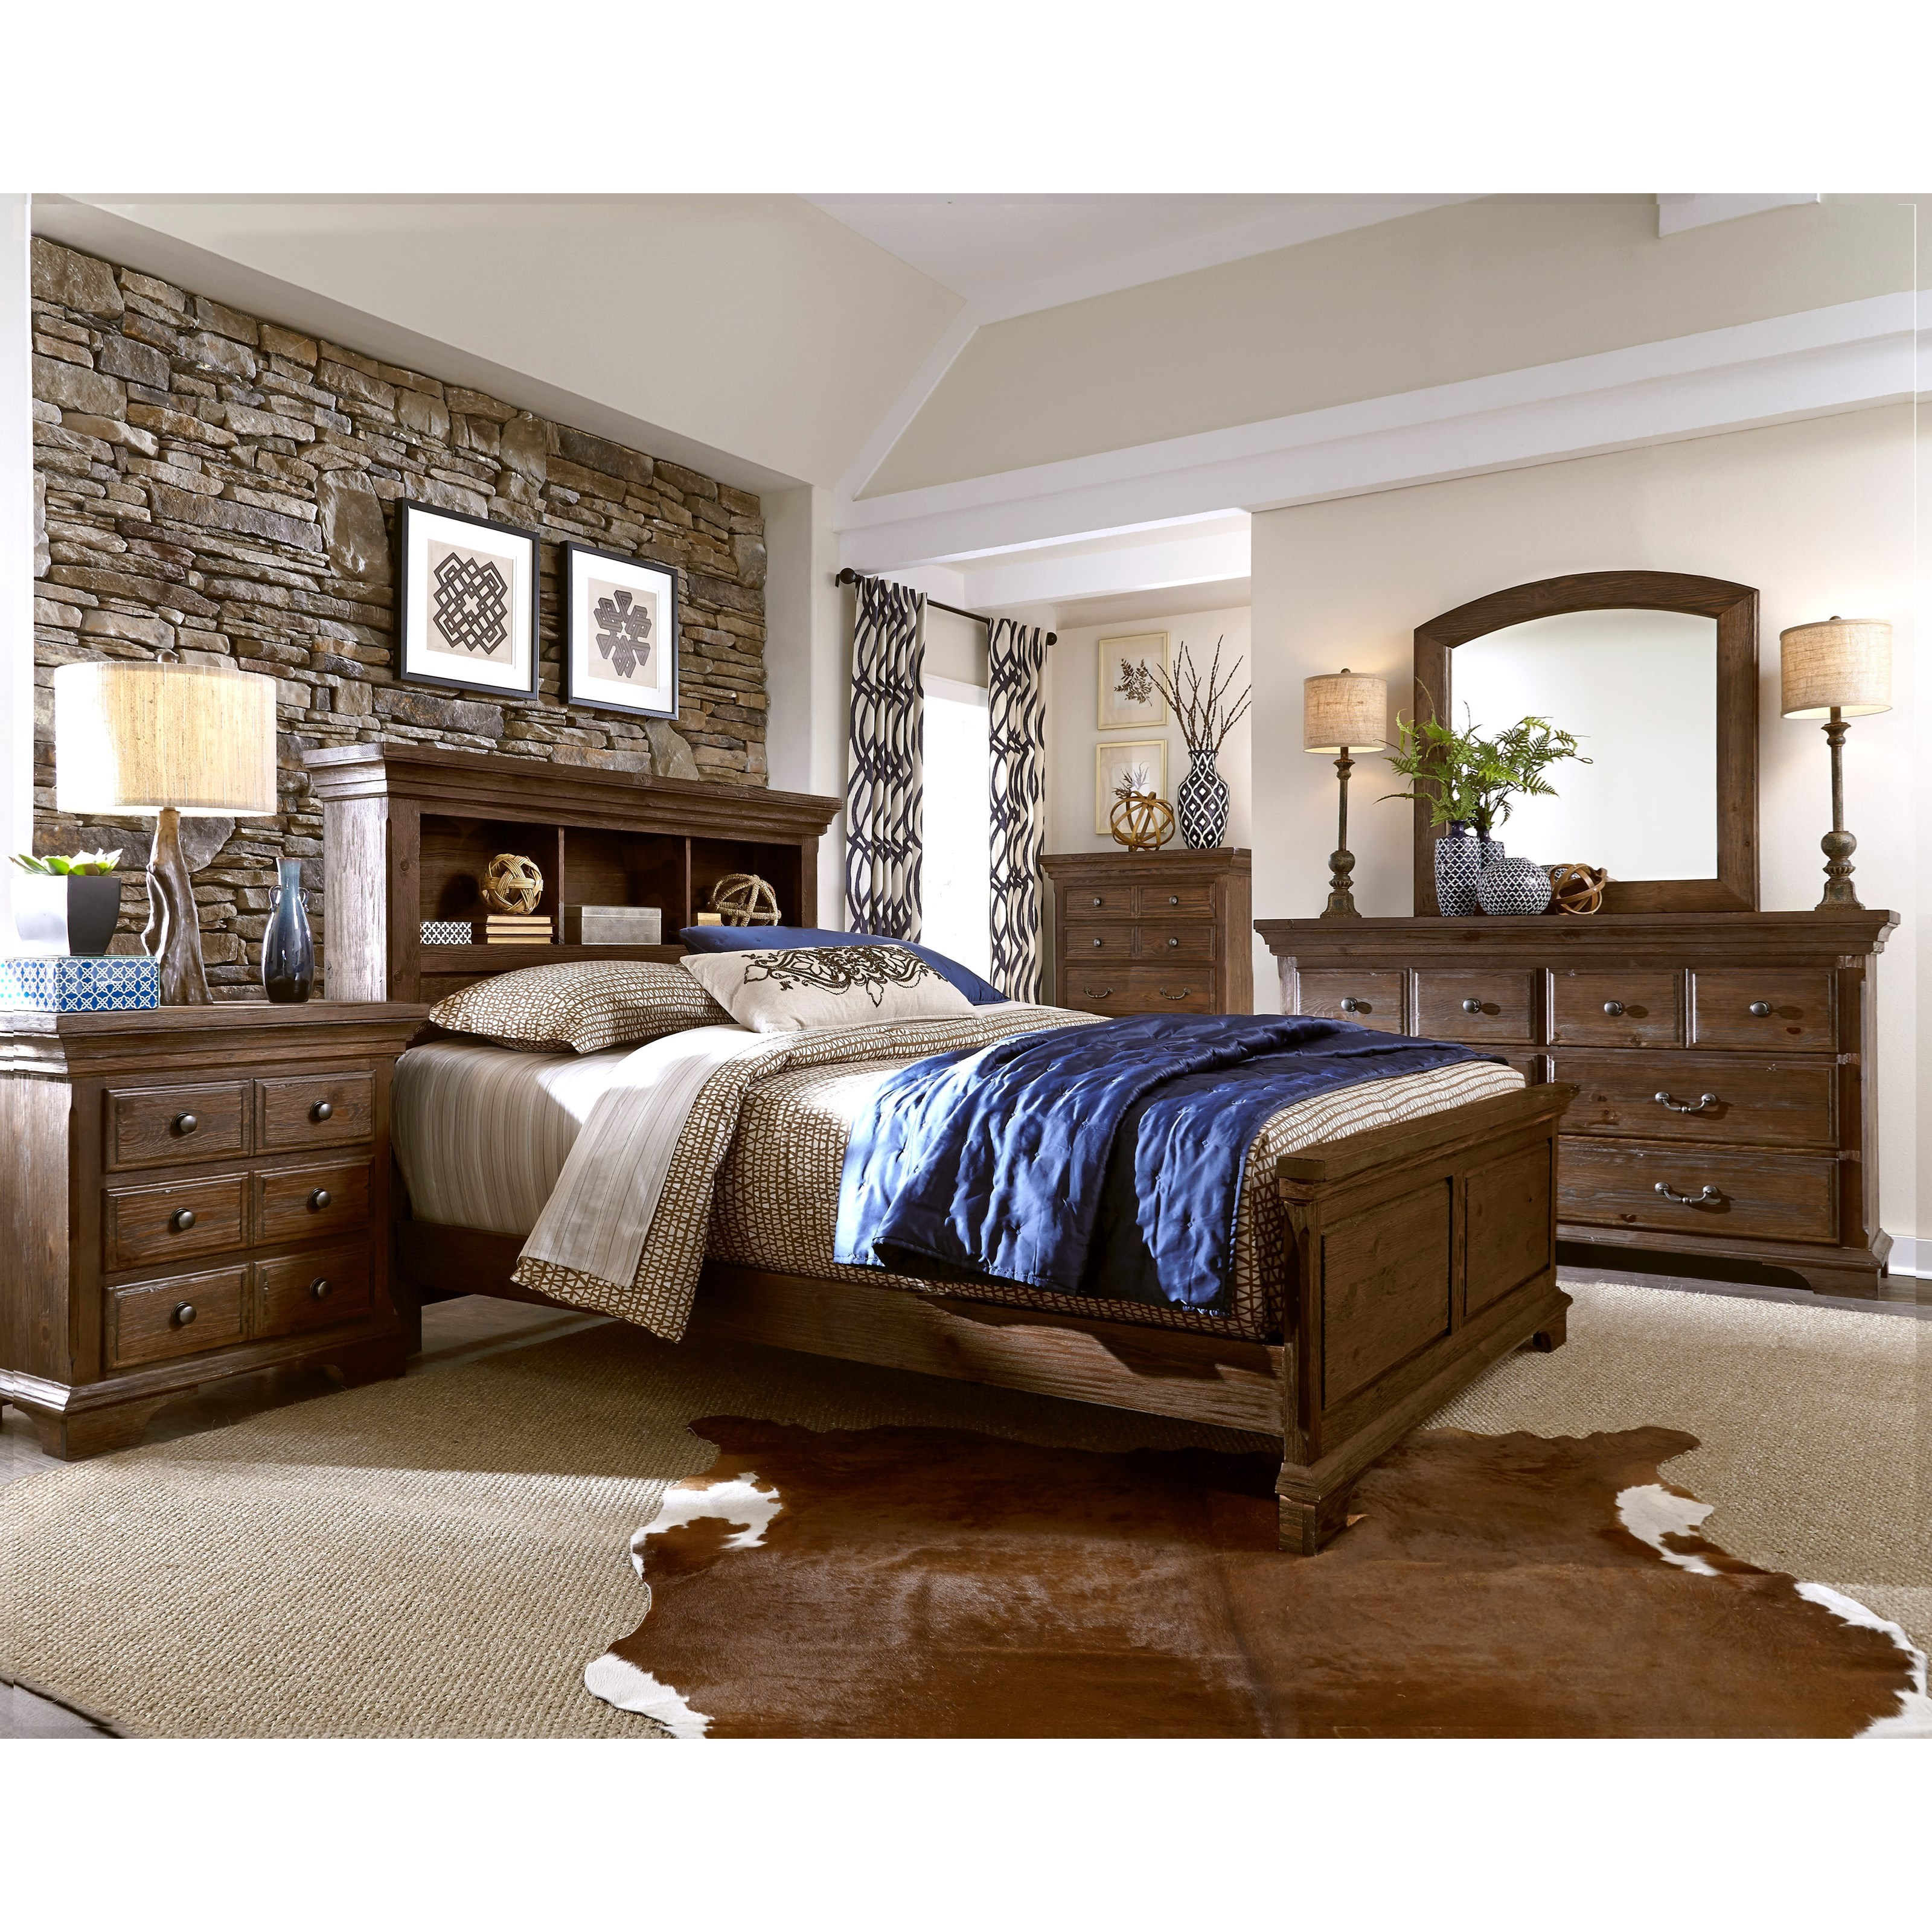 Progressive Furniture Copenhagen King Bedroom Group - Item Number: B621 K Bedroom Group 3